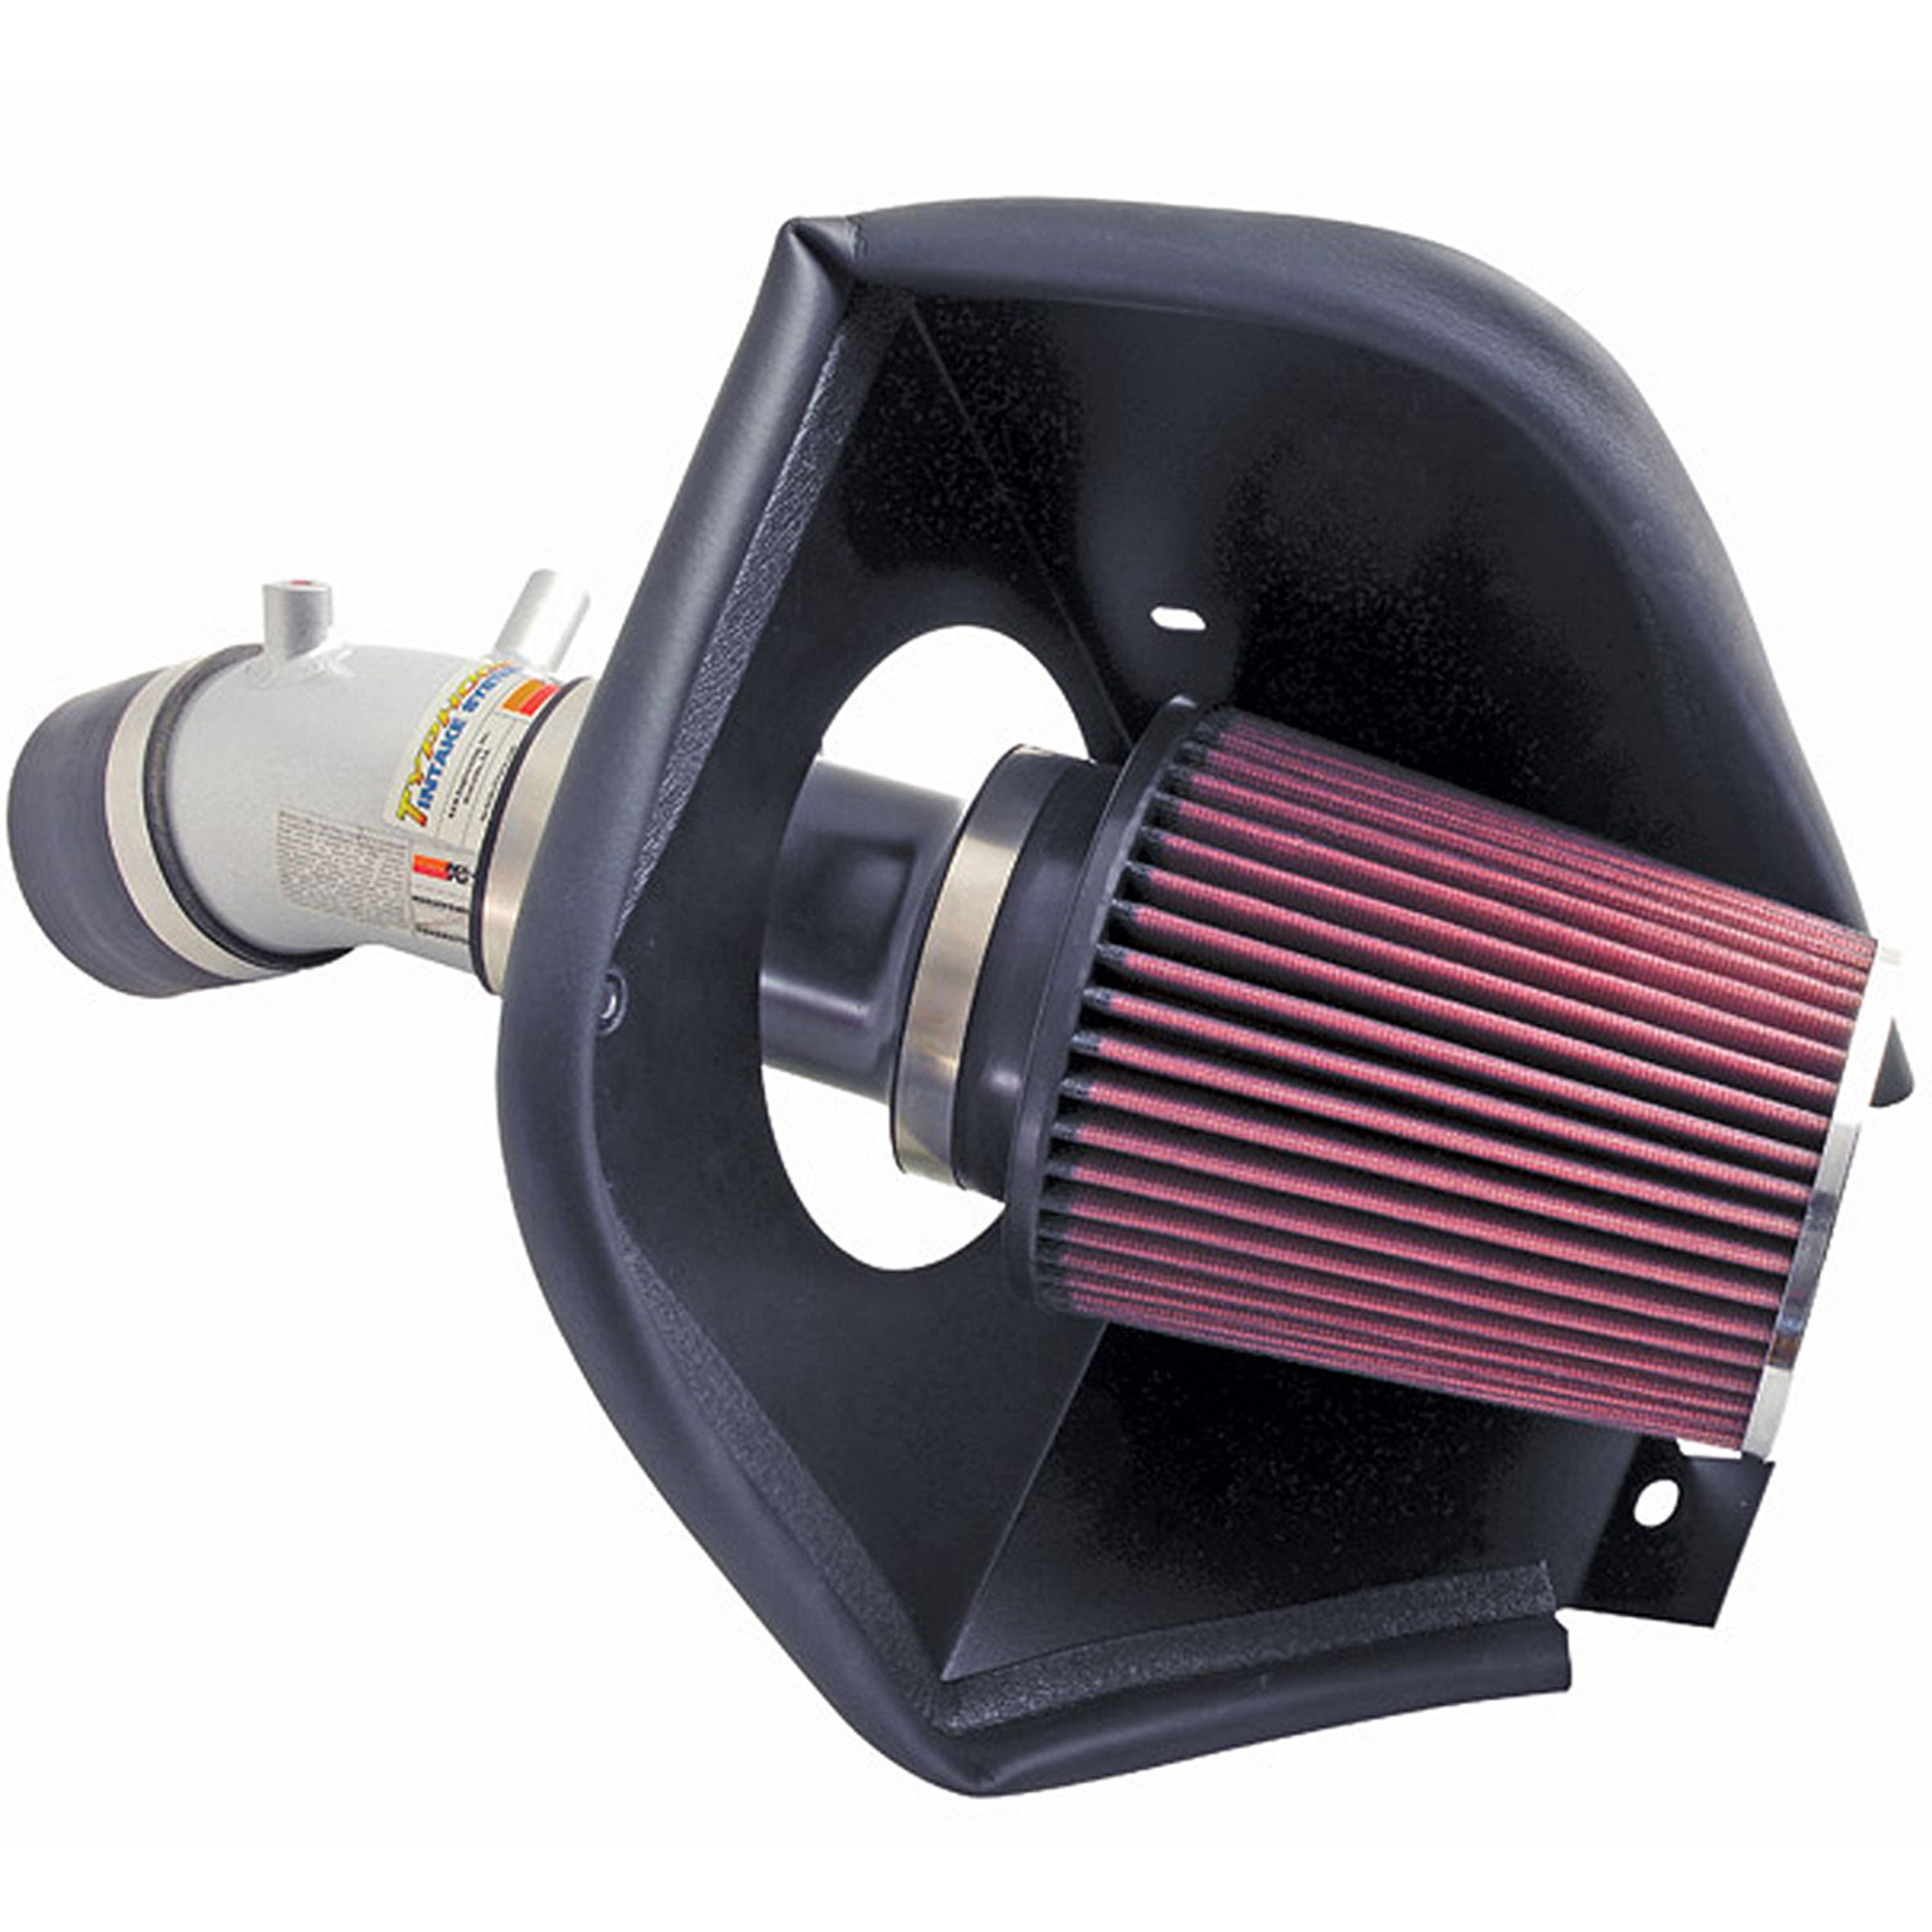 K&N Performance Intake Kit # 69-8615TS (Not Avail for purchase in California)